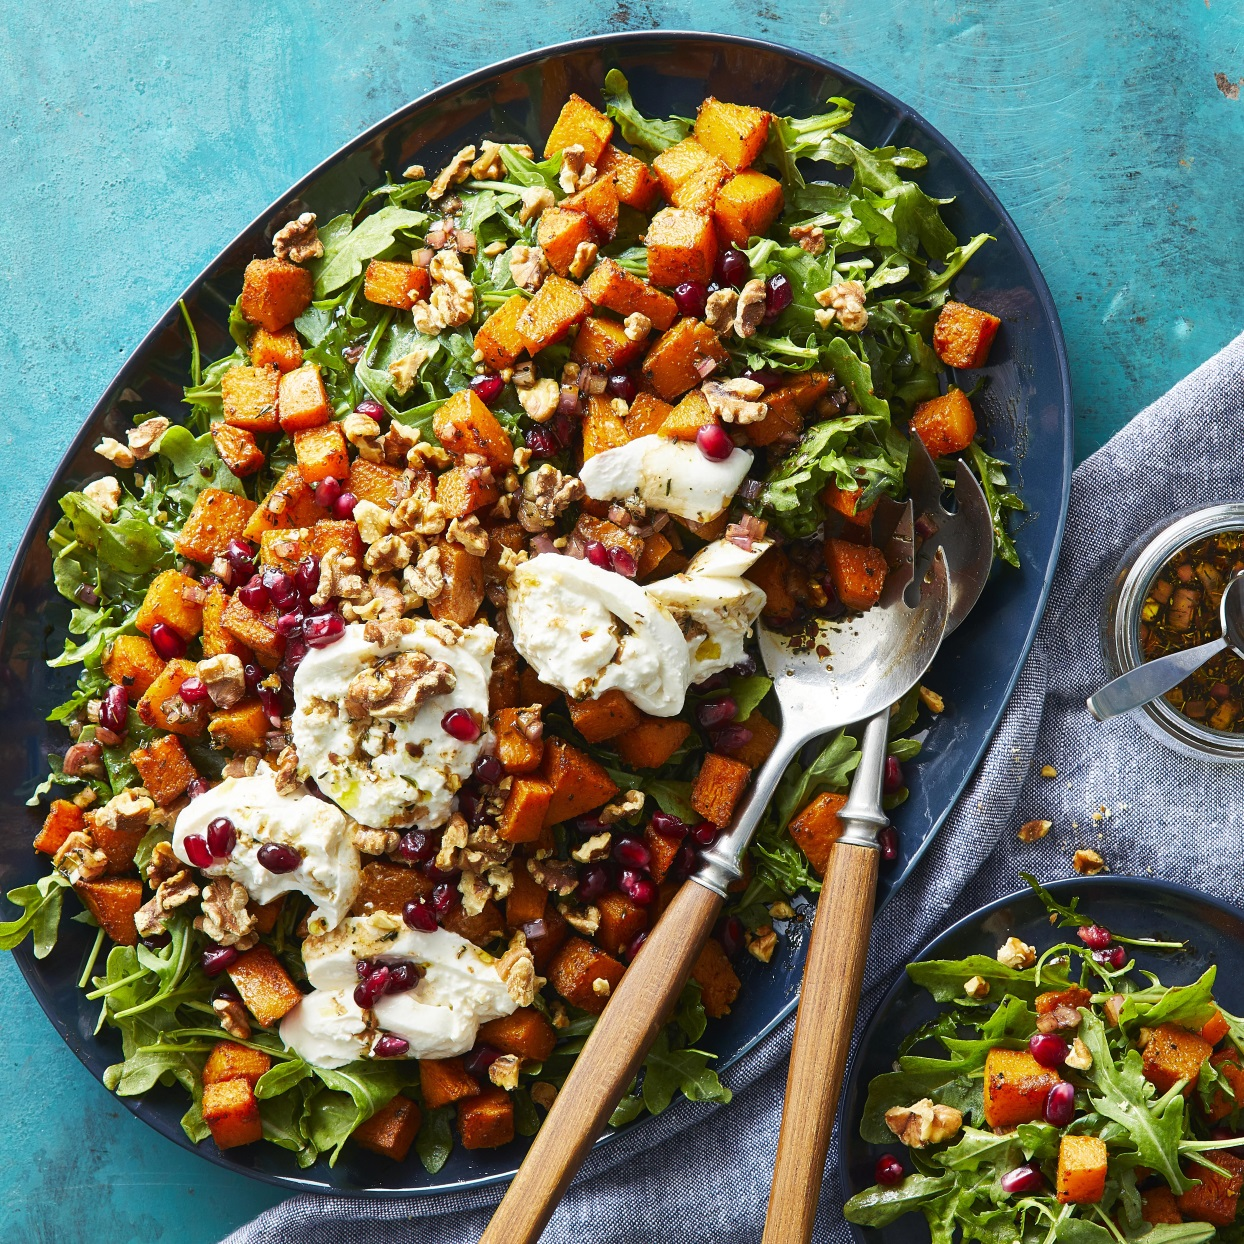 Roasted Butternut Squash Salad with Burrata Trusted Brands